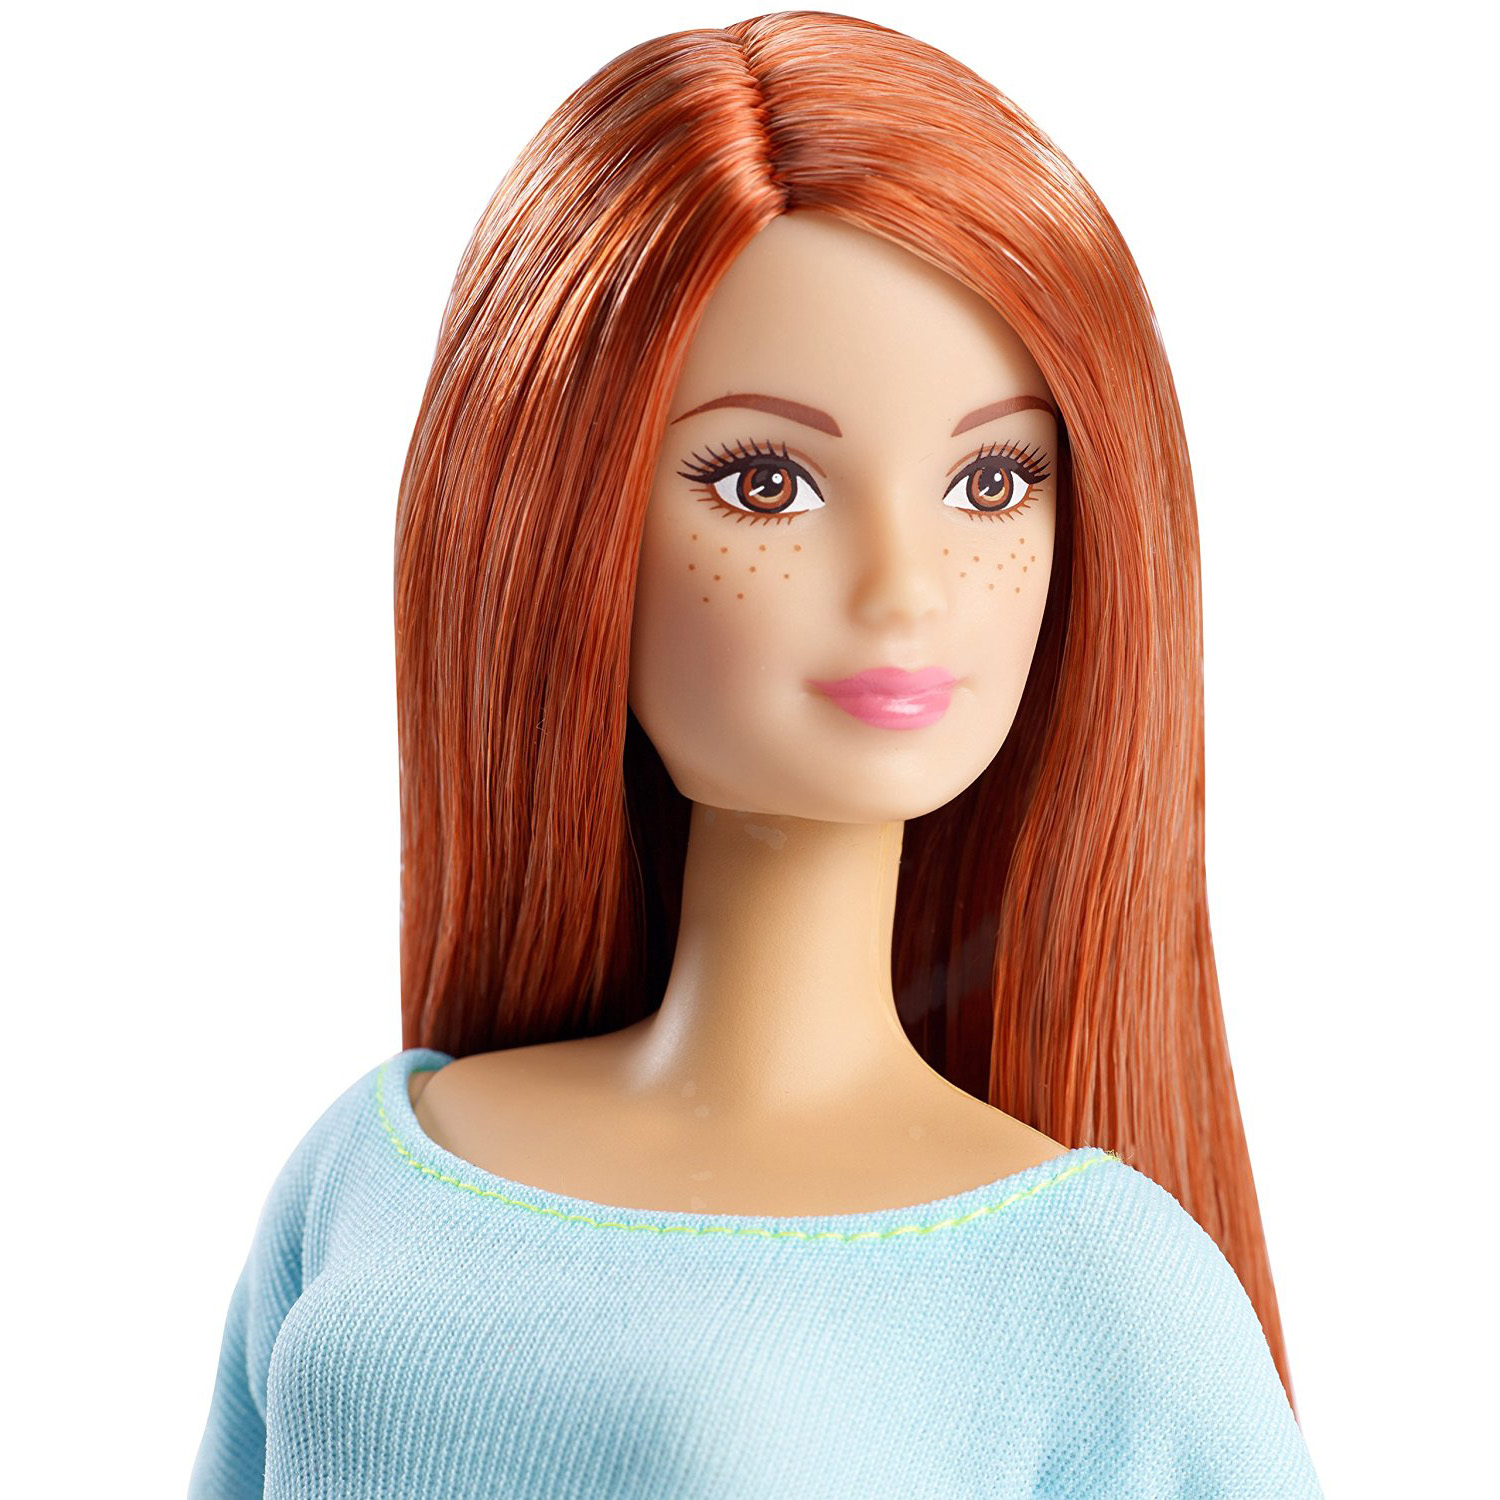 BLUE TOP Yoga DOLL Mattel Barbie Made To Move AUBRUN HAIR